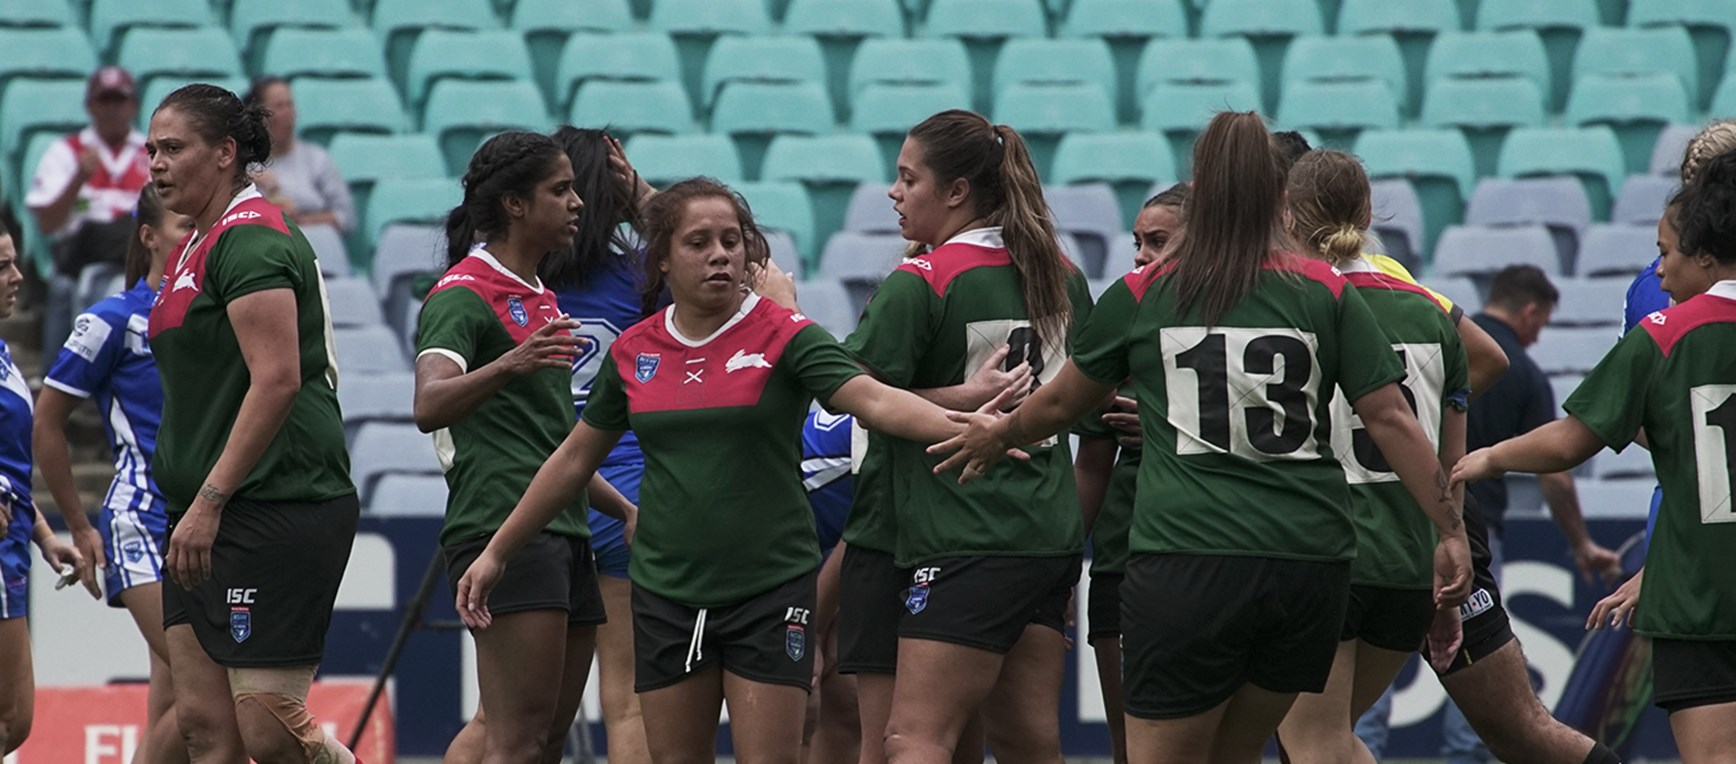 Gallery - Rabbitohs women battle it out at ANZ